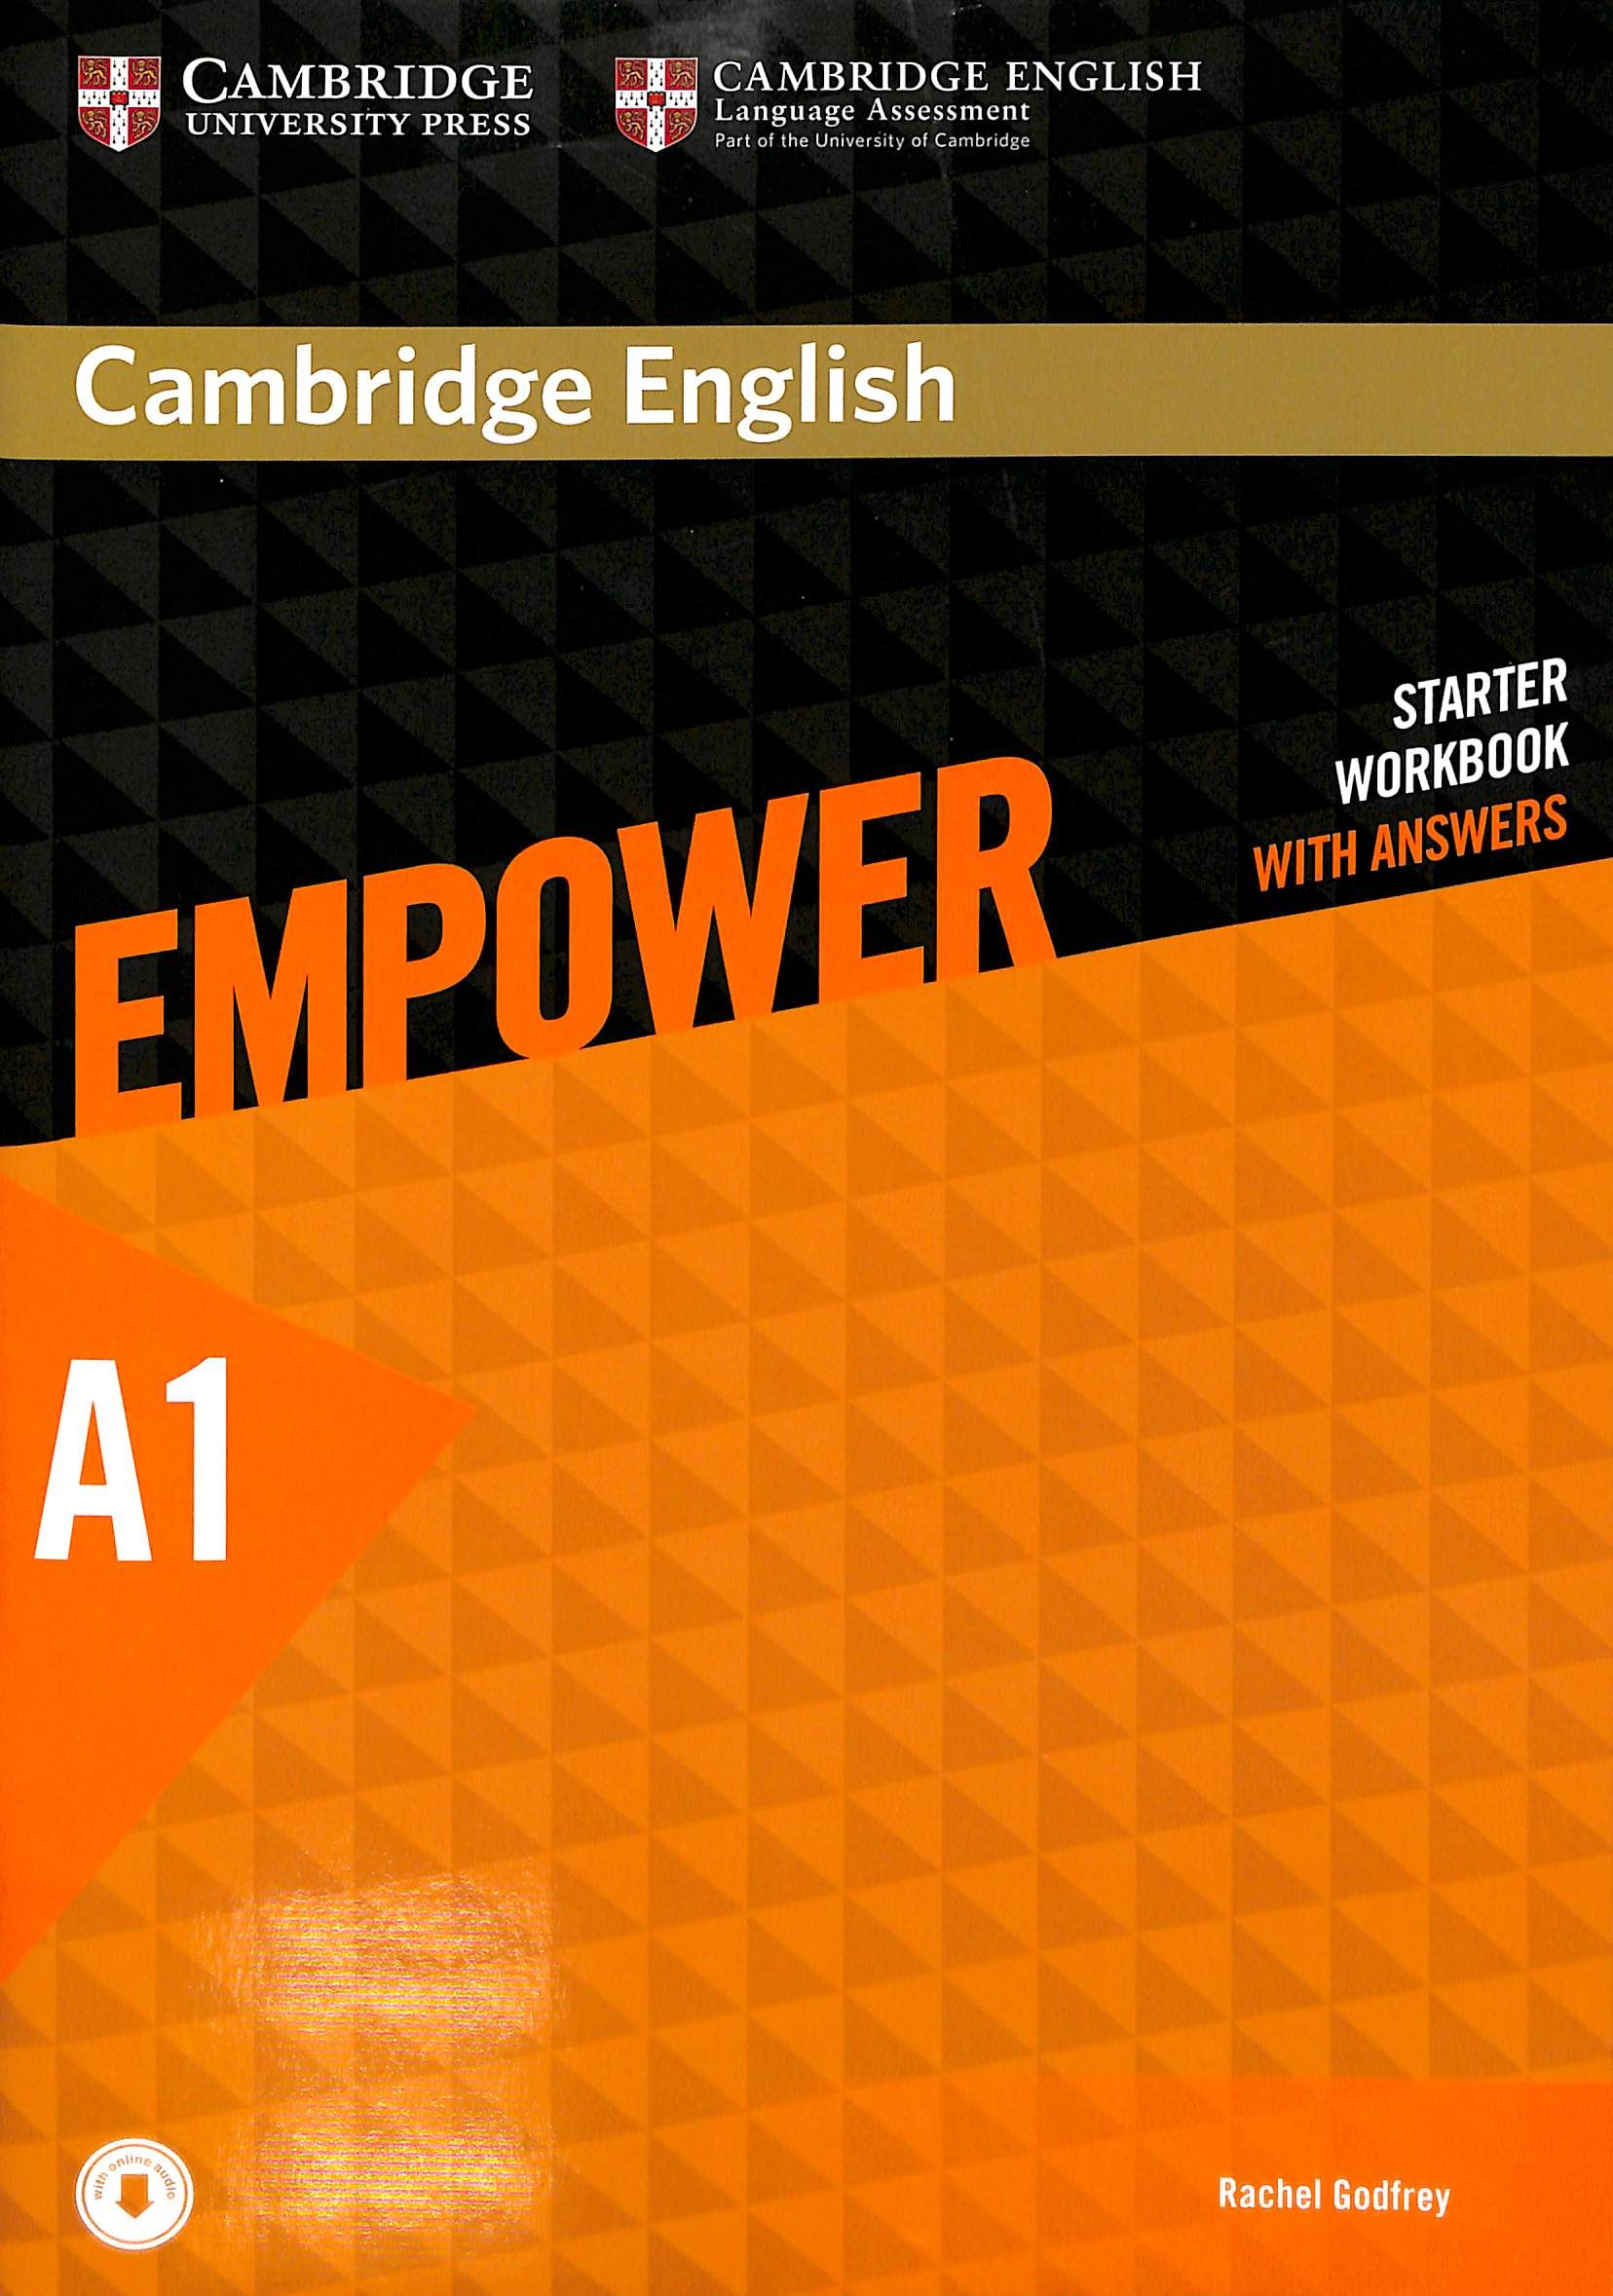 Cambridge English Empower A1 Starter Workbook With Answers Rachel Godfrey